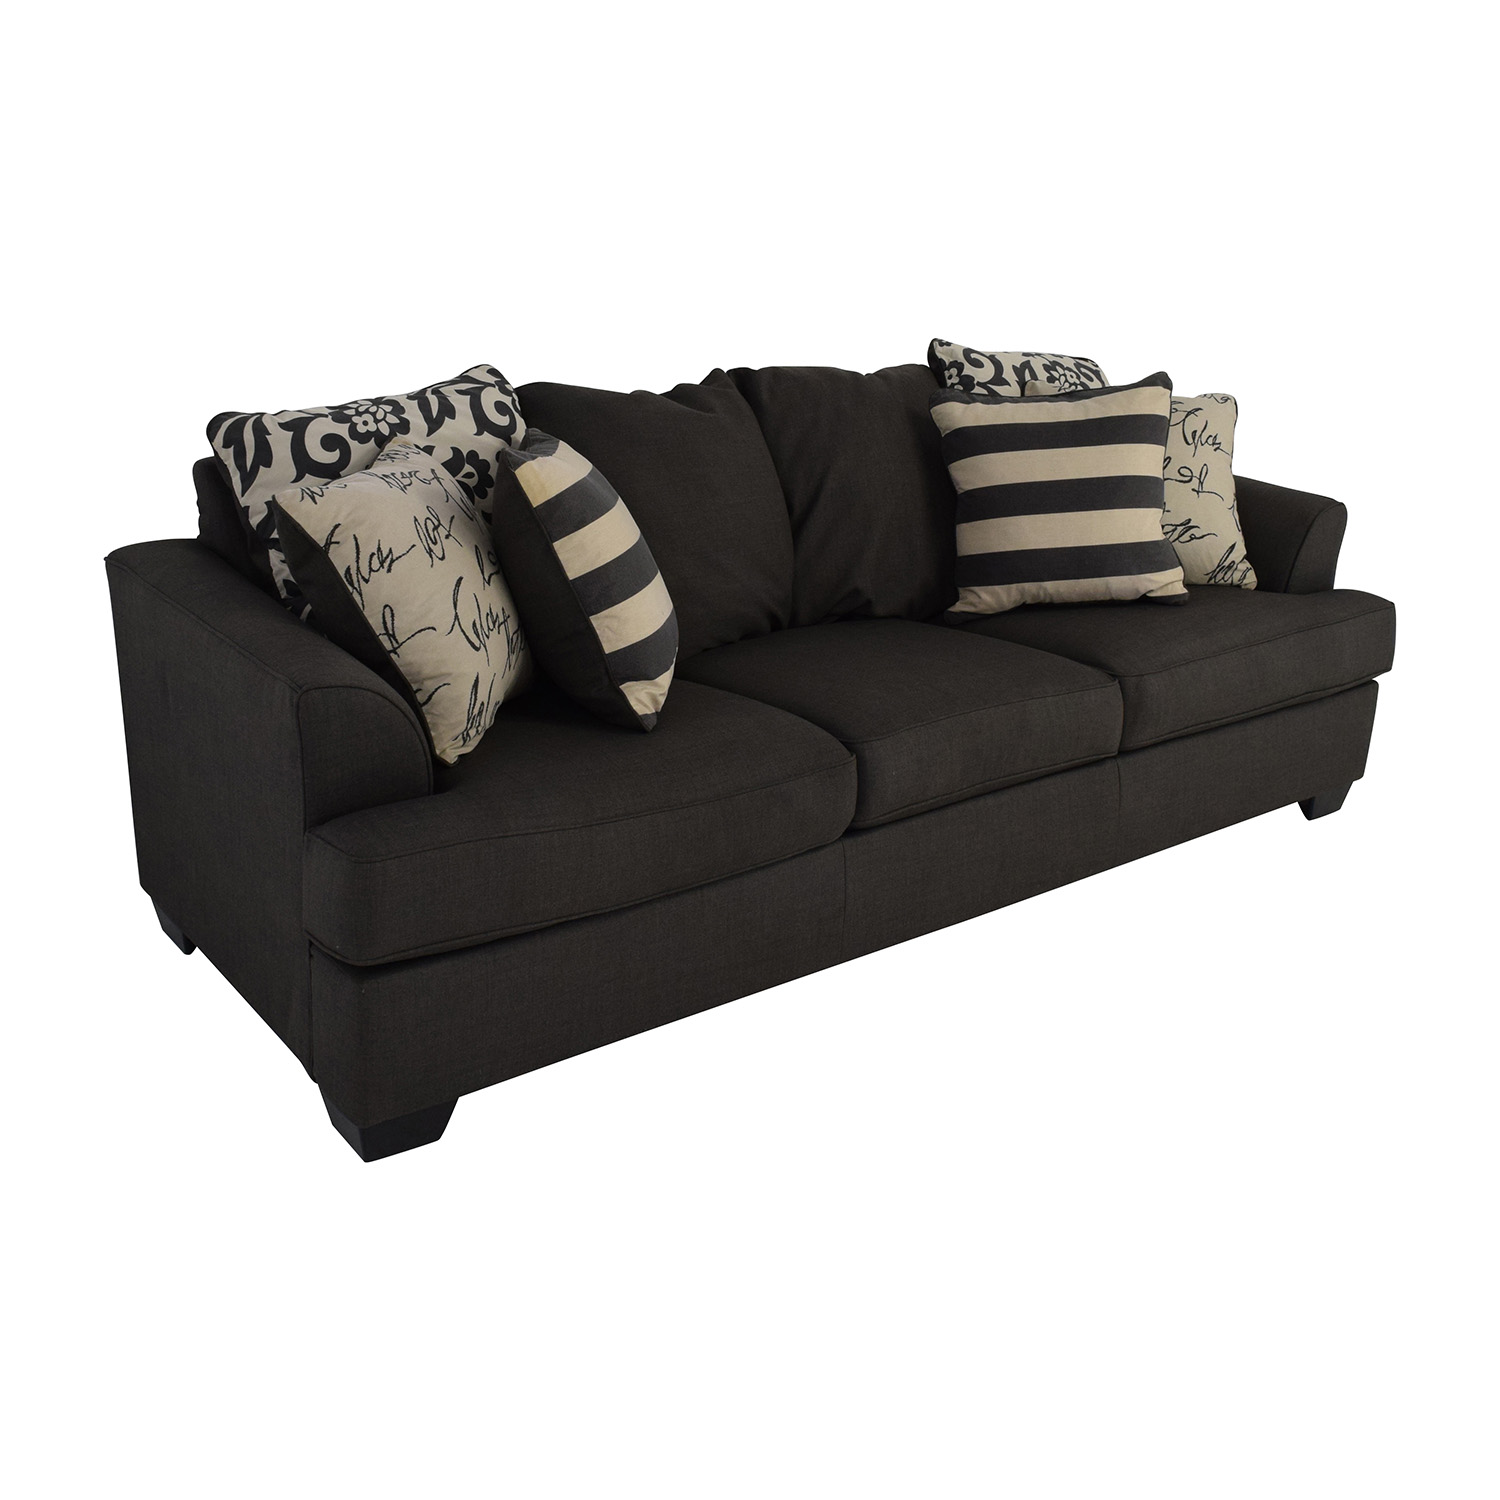 48 off ashley furniture ashley furniture gray fabric sofa sofas. Black Bedroom Furniture Sets. Home Design Ideas